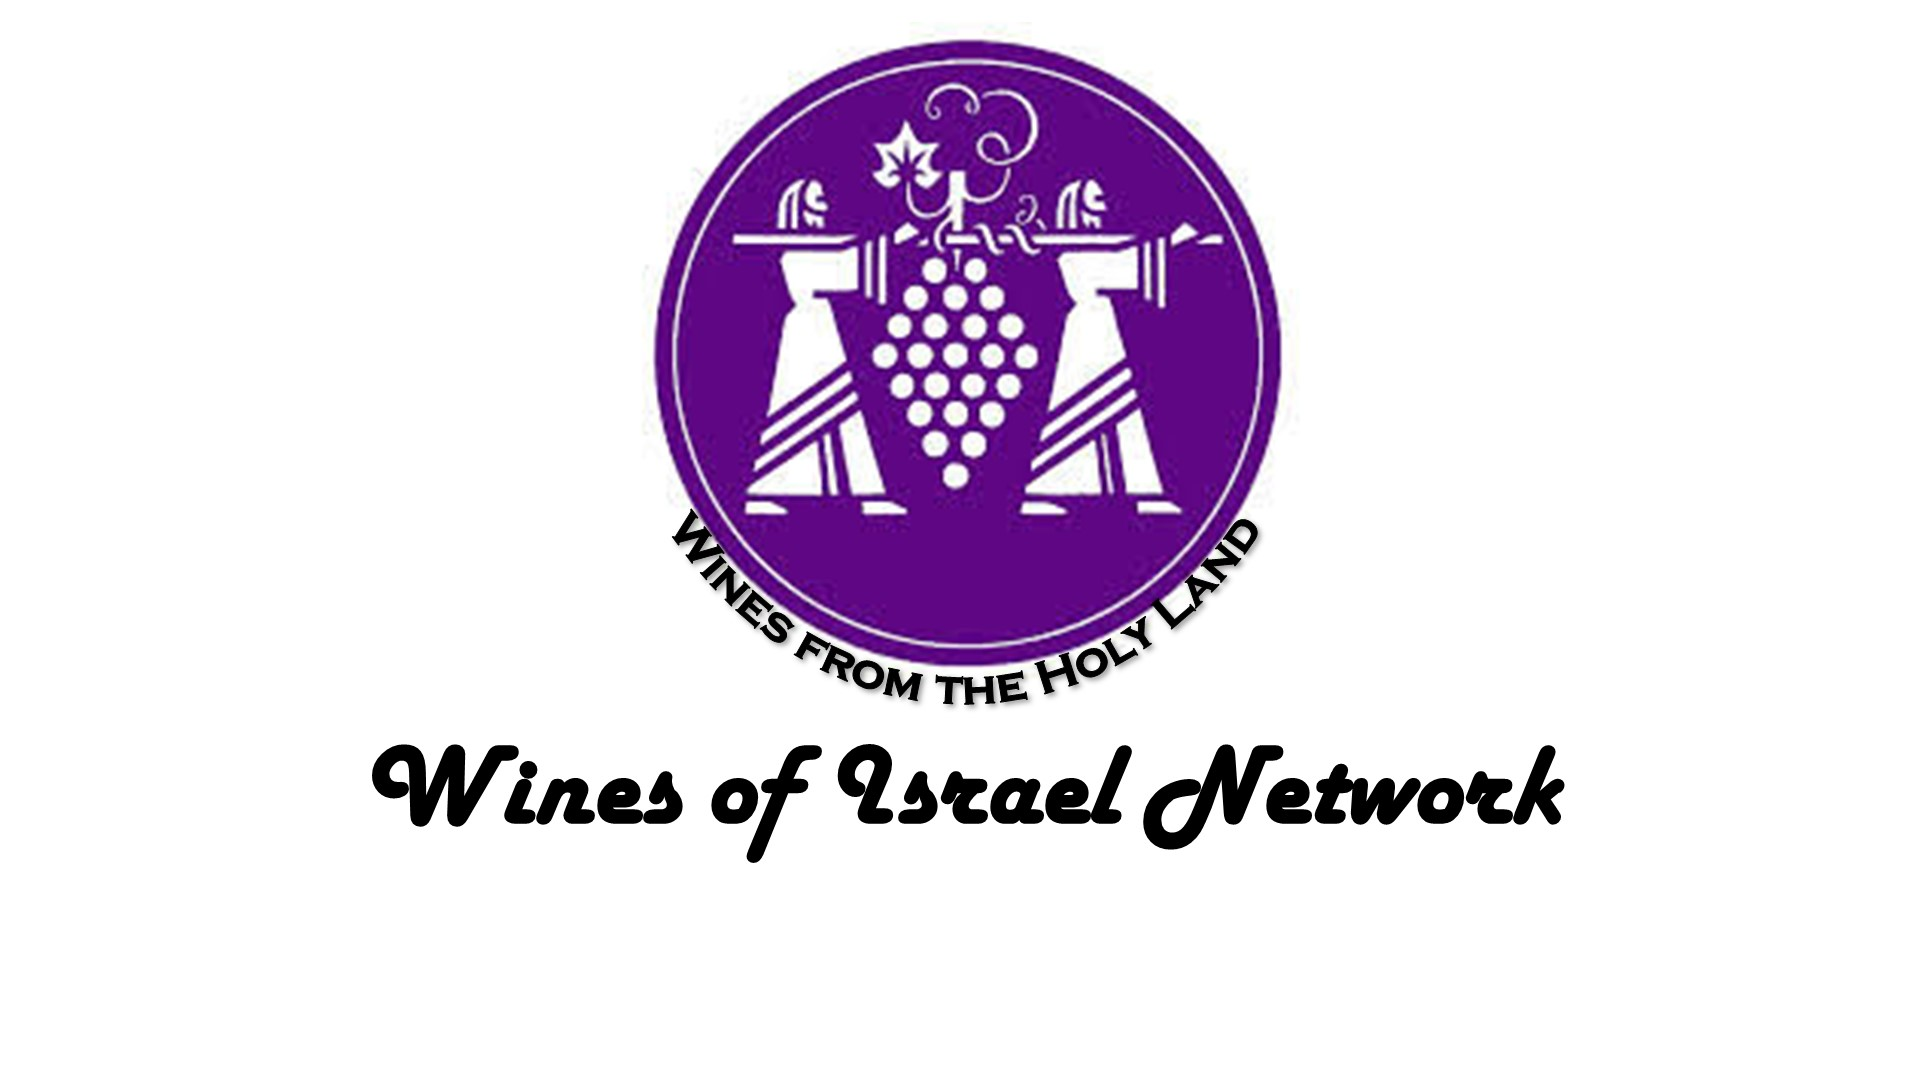 Wines of Israel Network